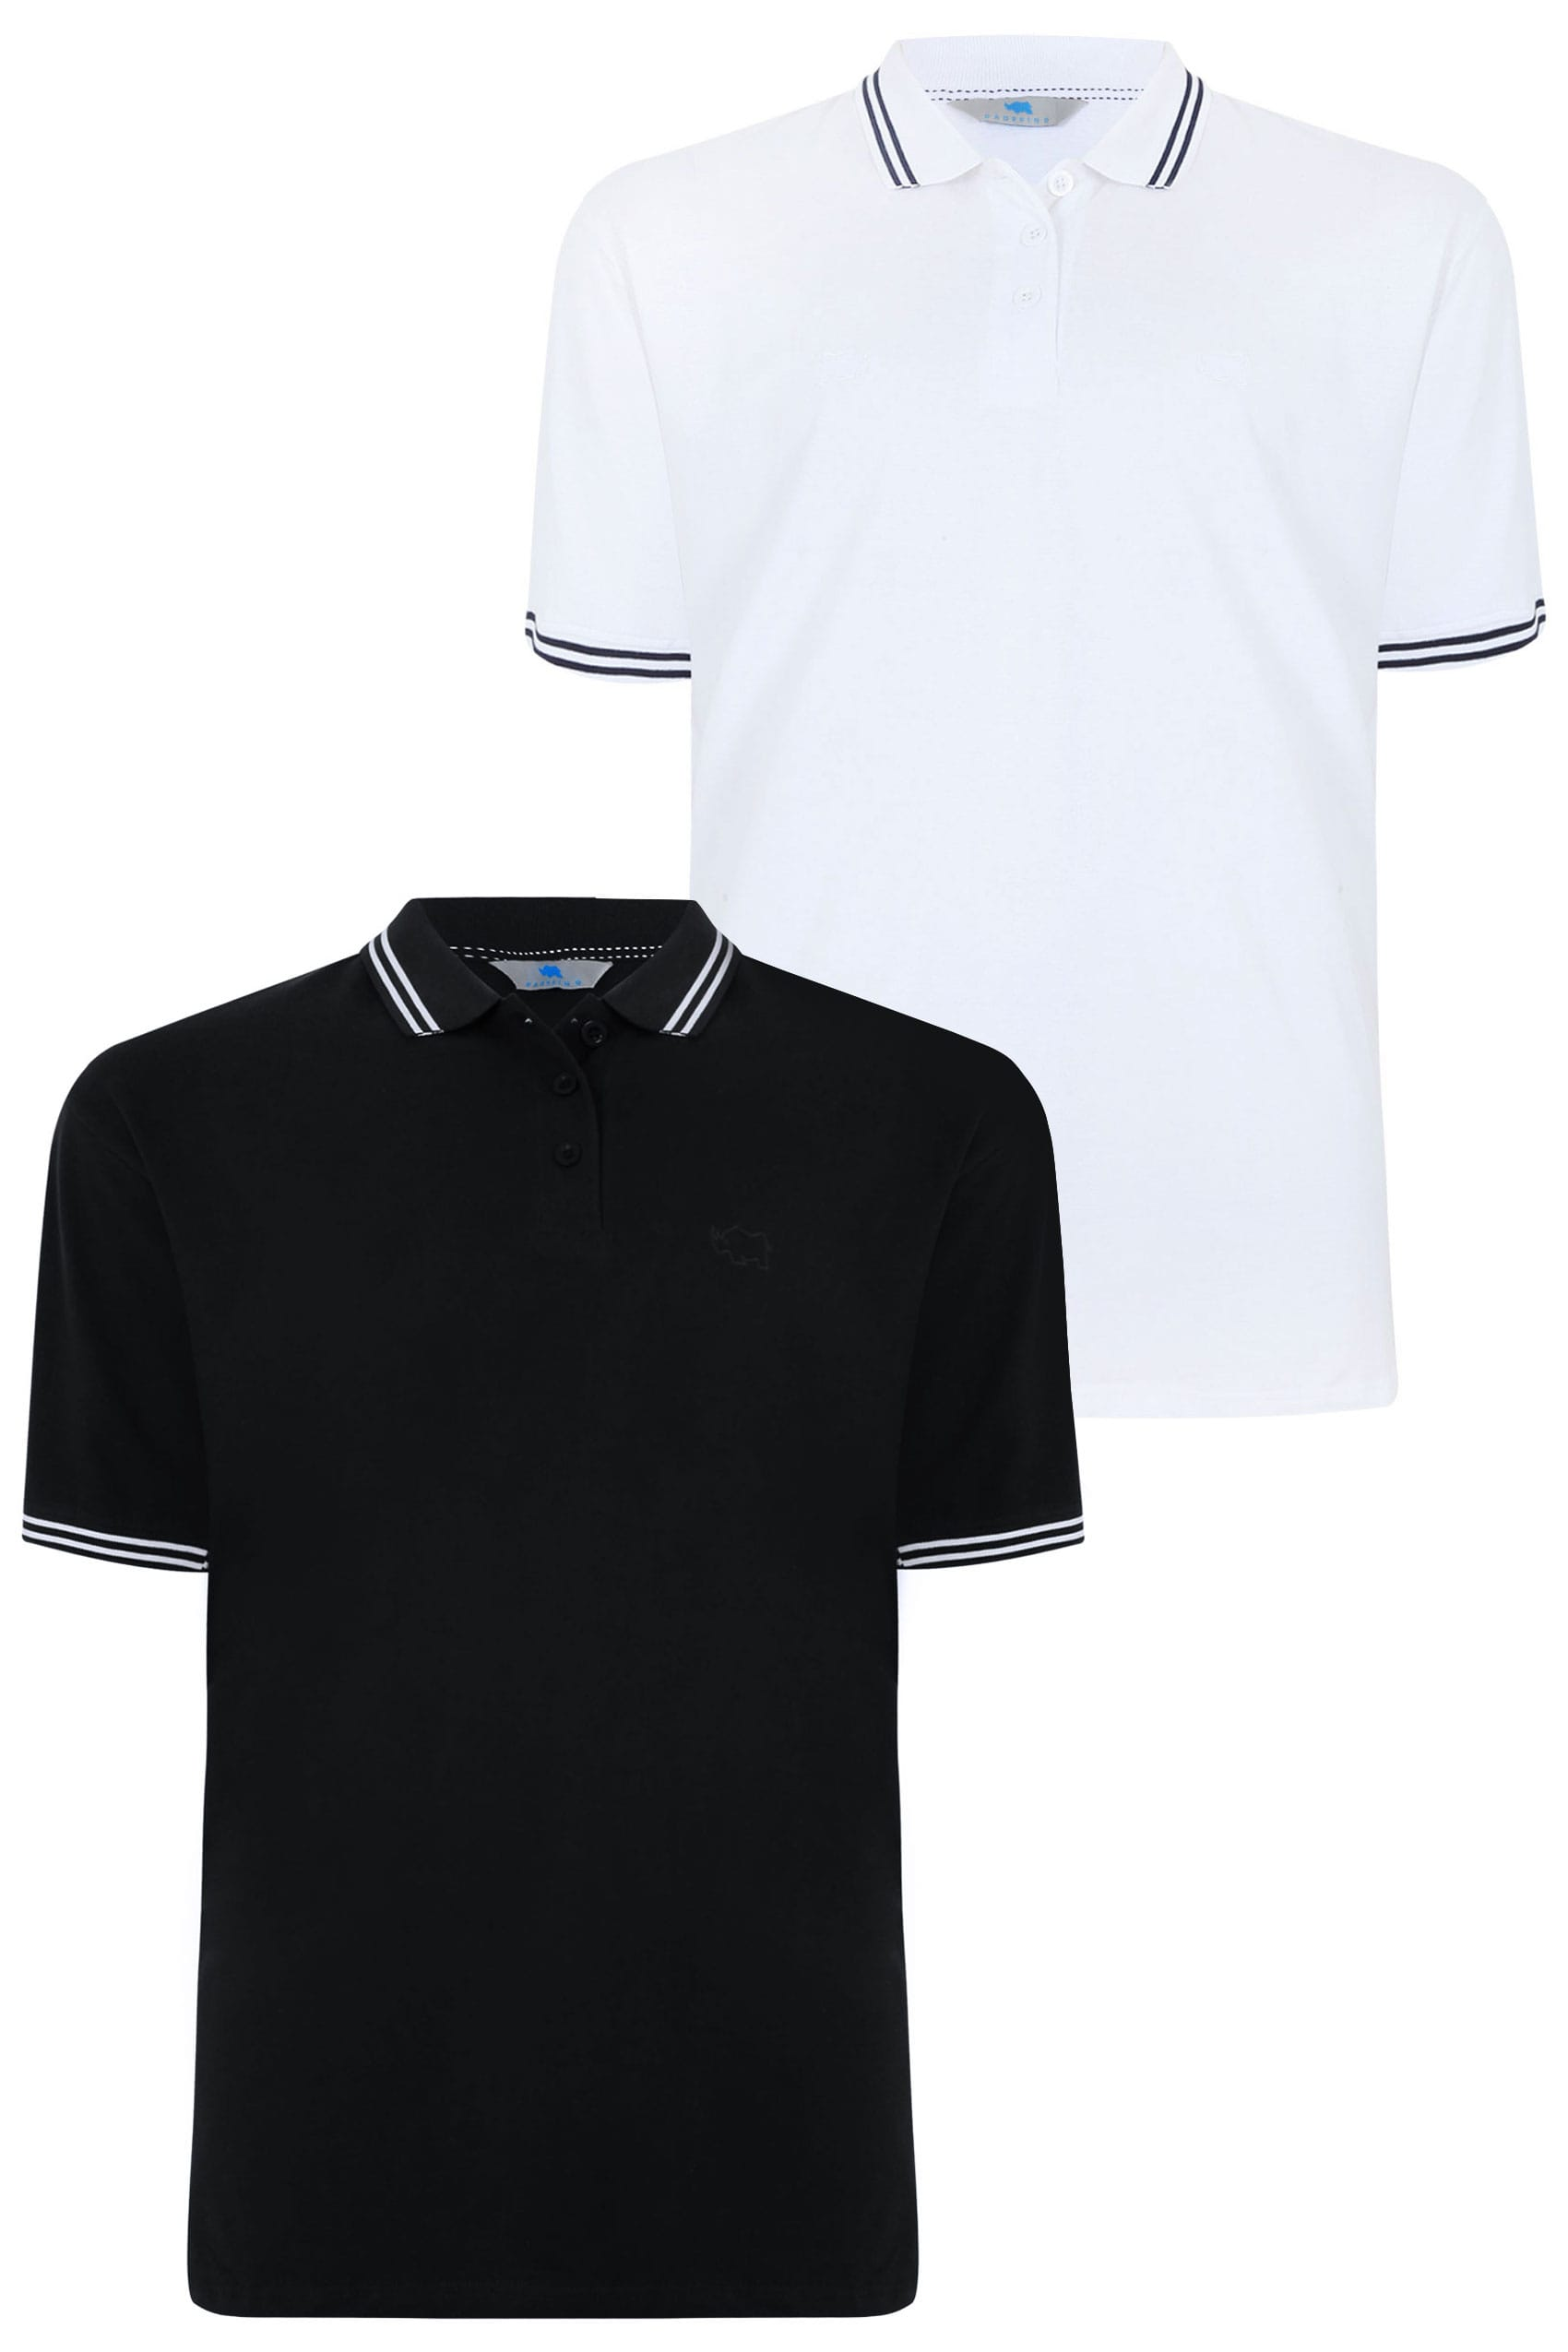 d8af84c7 Polo Shirts 2 PACK BadRhino Black & White Polo Shirt With Stripe Detail  200576